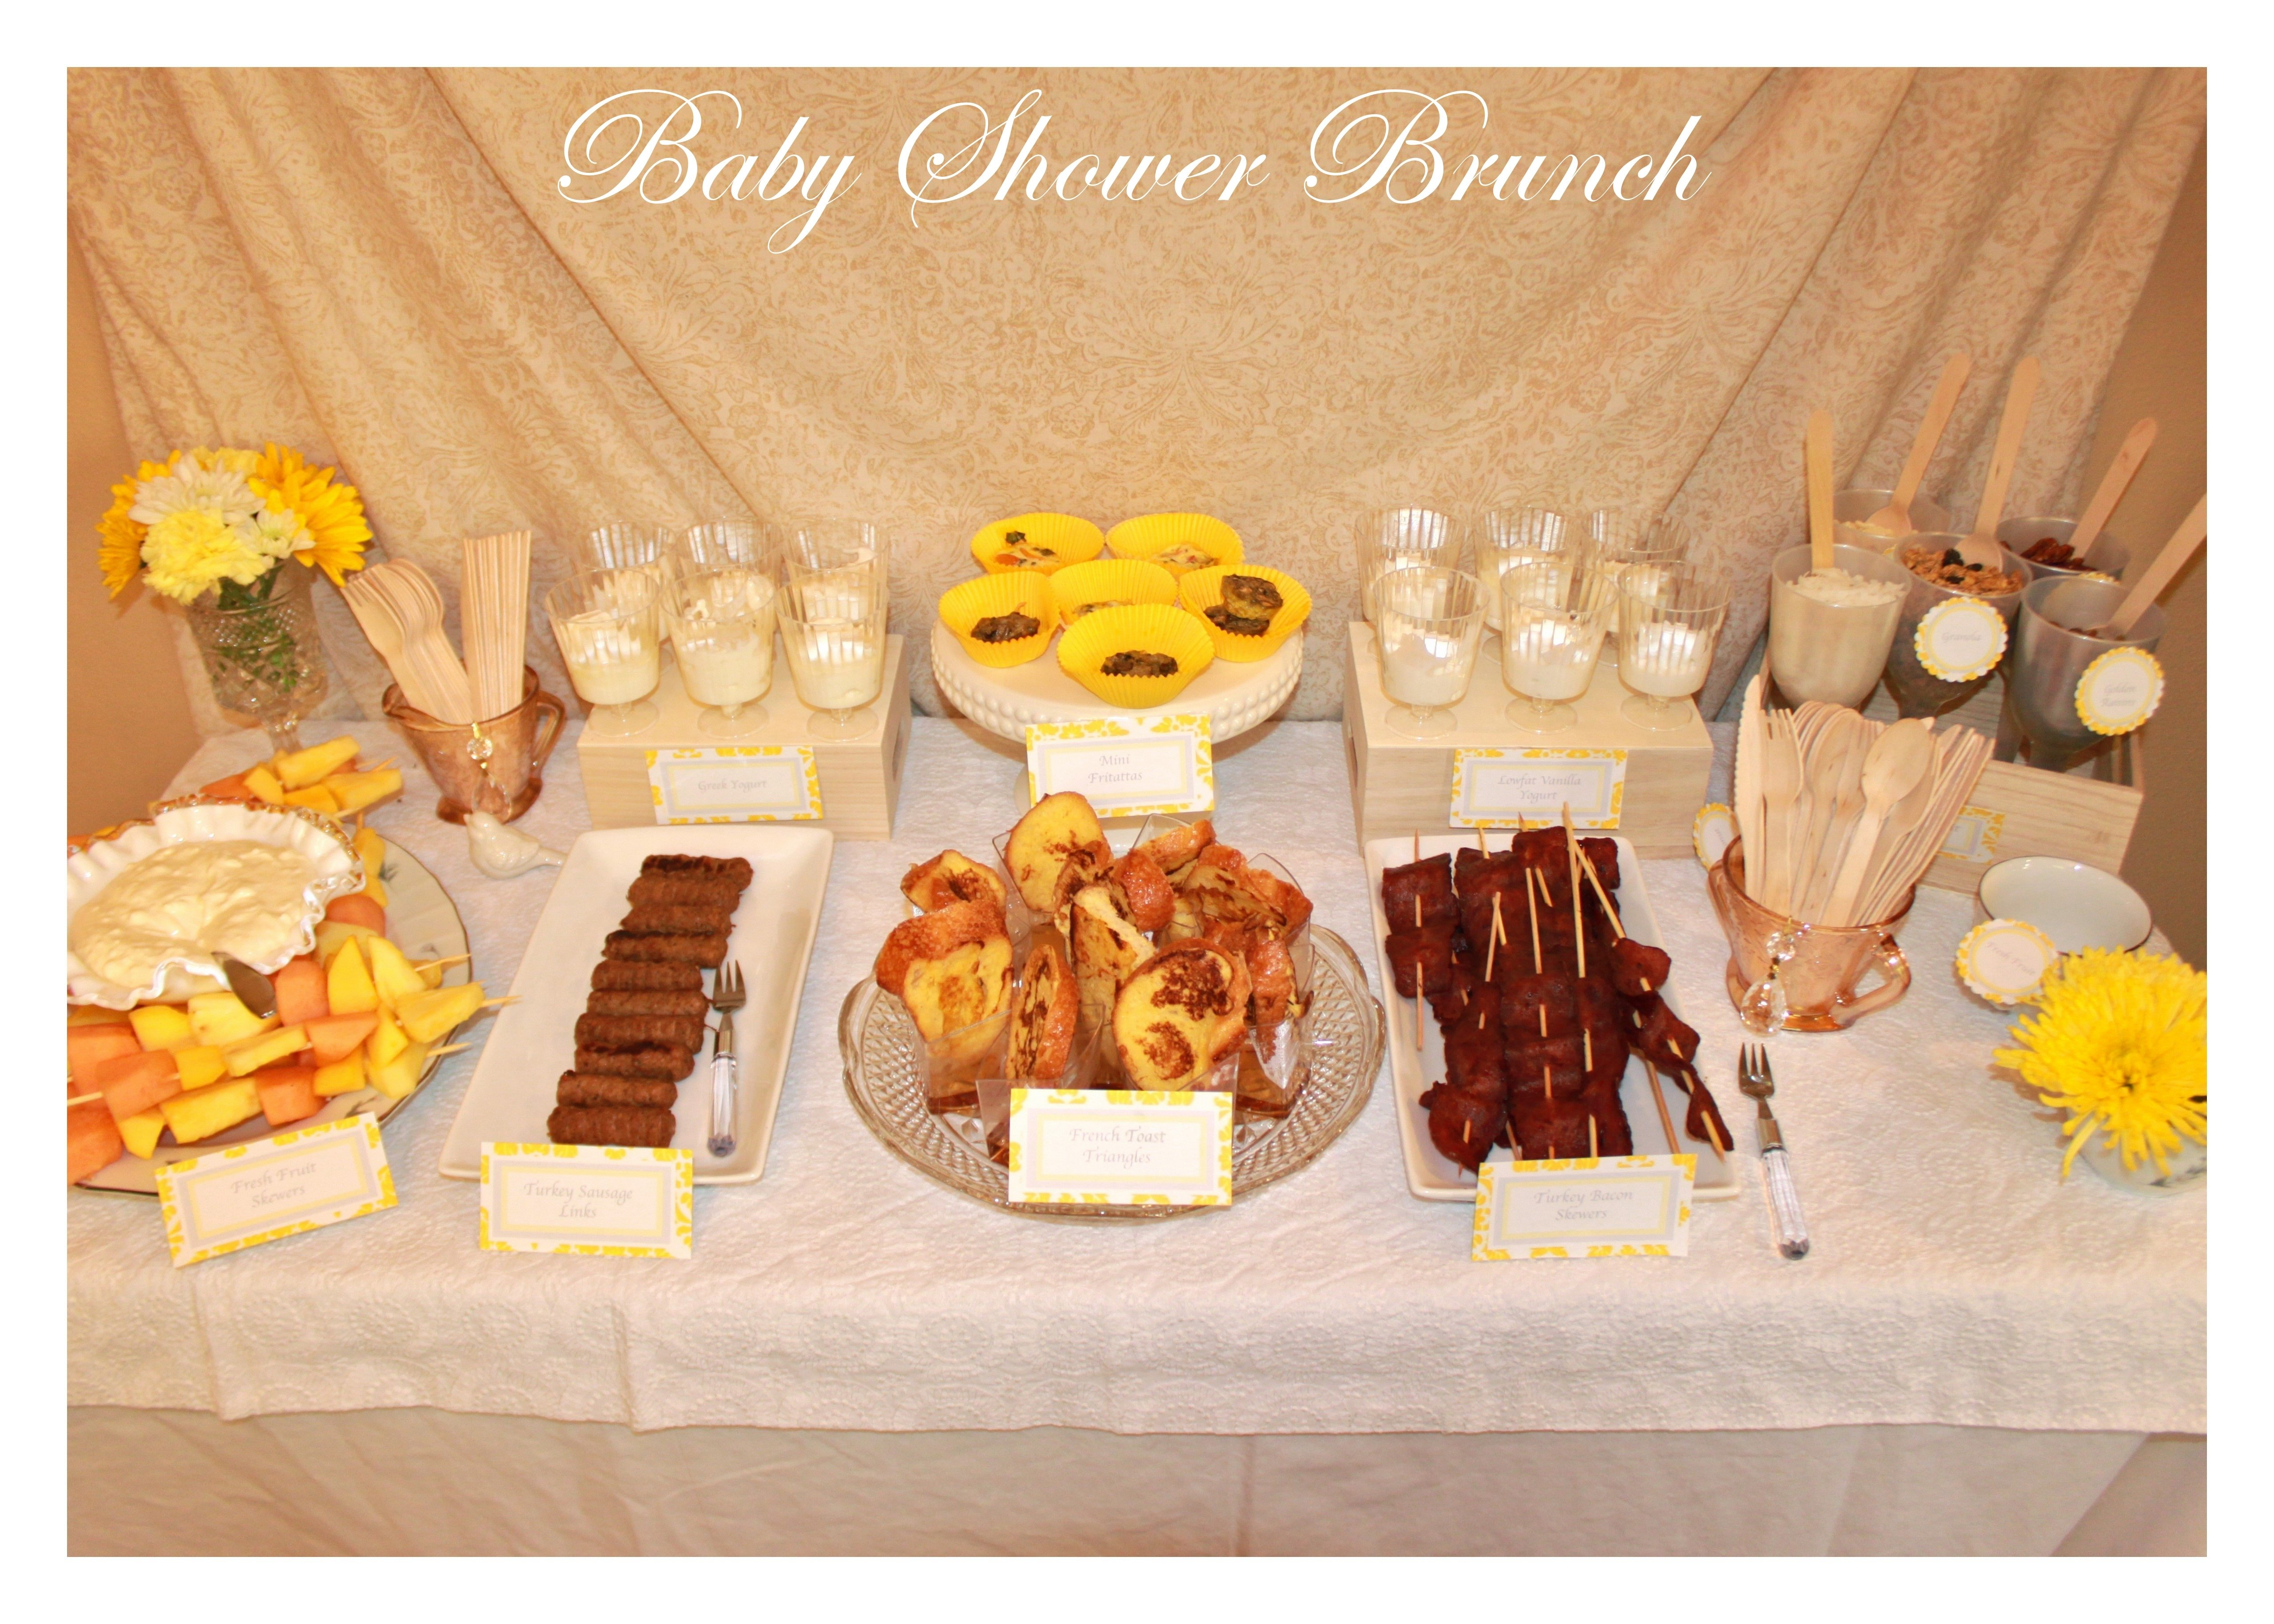 10 Gorgeous Brunch Menu Ideas For Baby Shower baby shower brunch menu ideas archaicawful buffet recipe for 2020